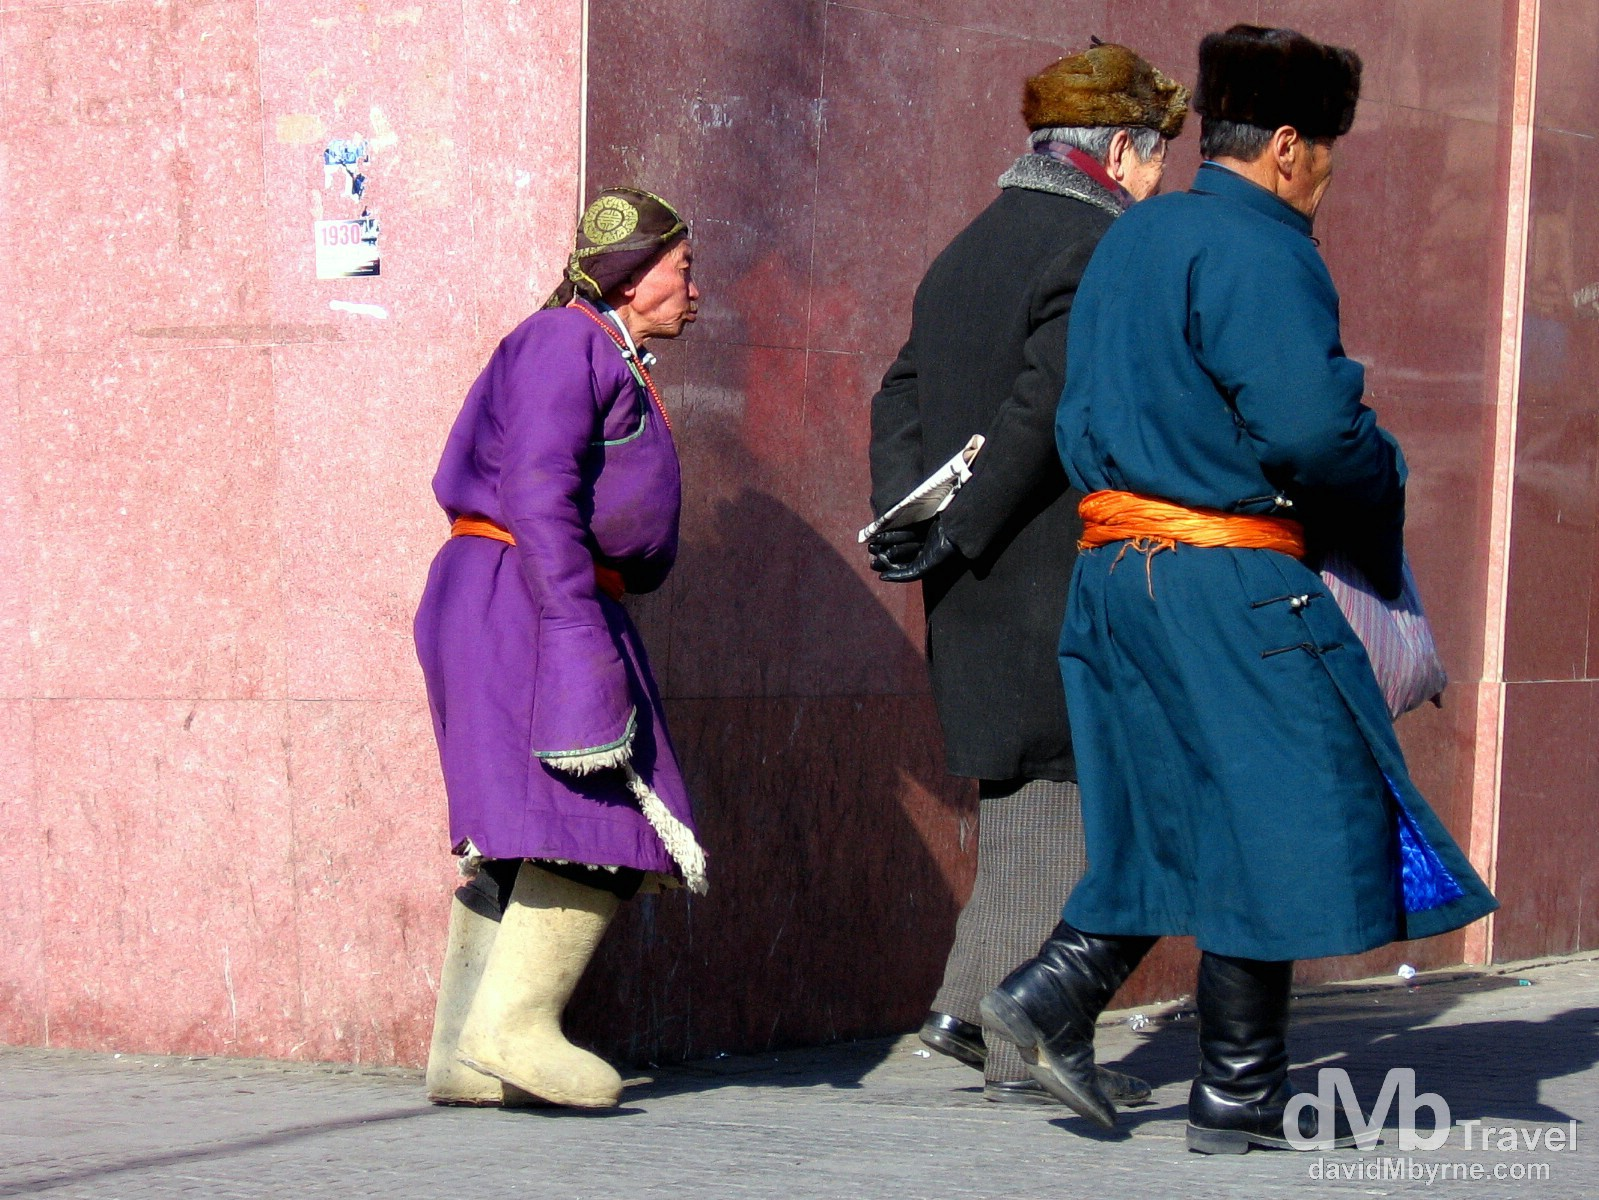 Locals walking the freezing cold streets of Ulan Bator, Mongolia. February 16, 2006.